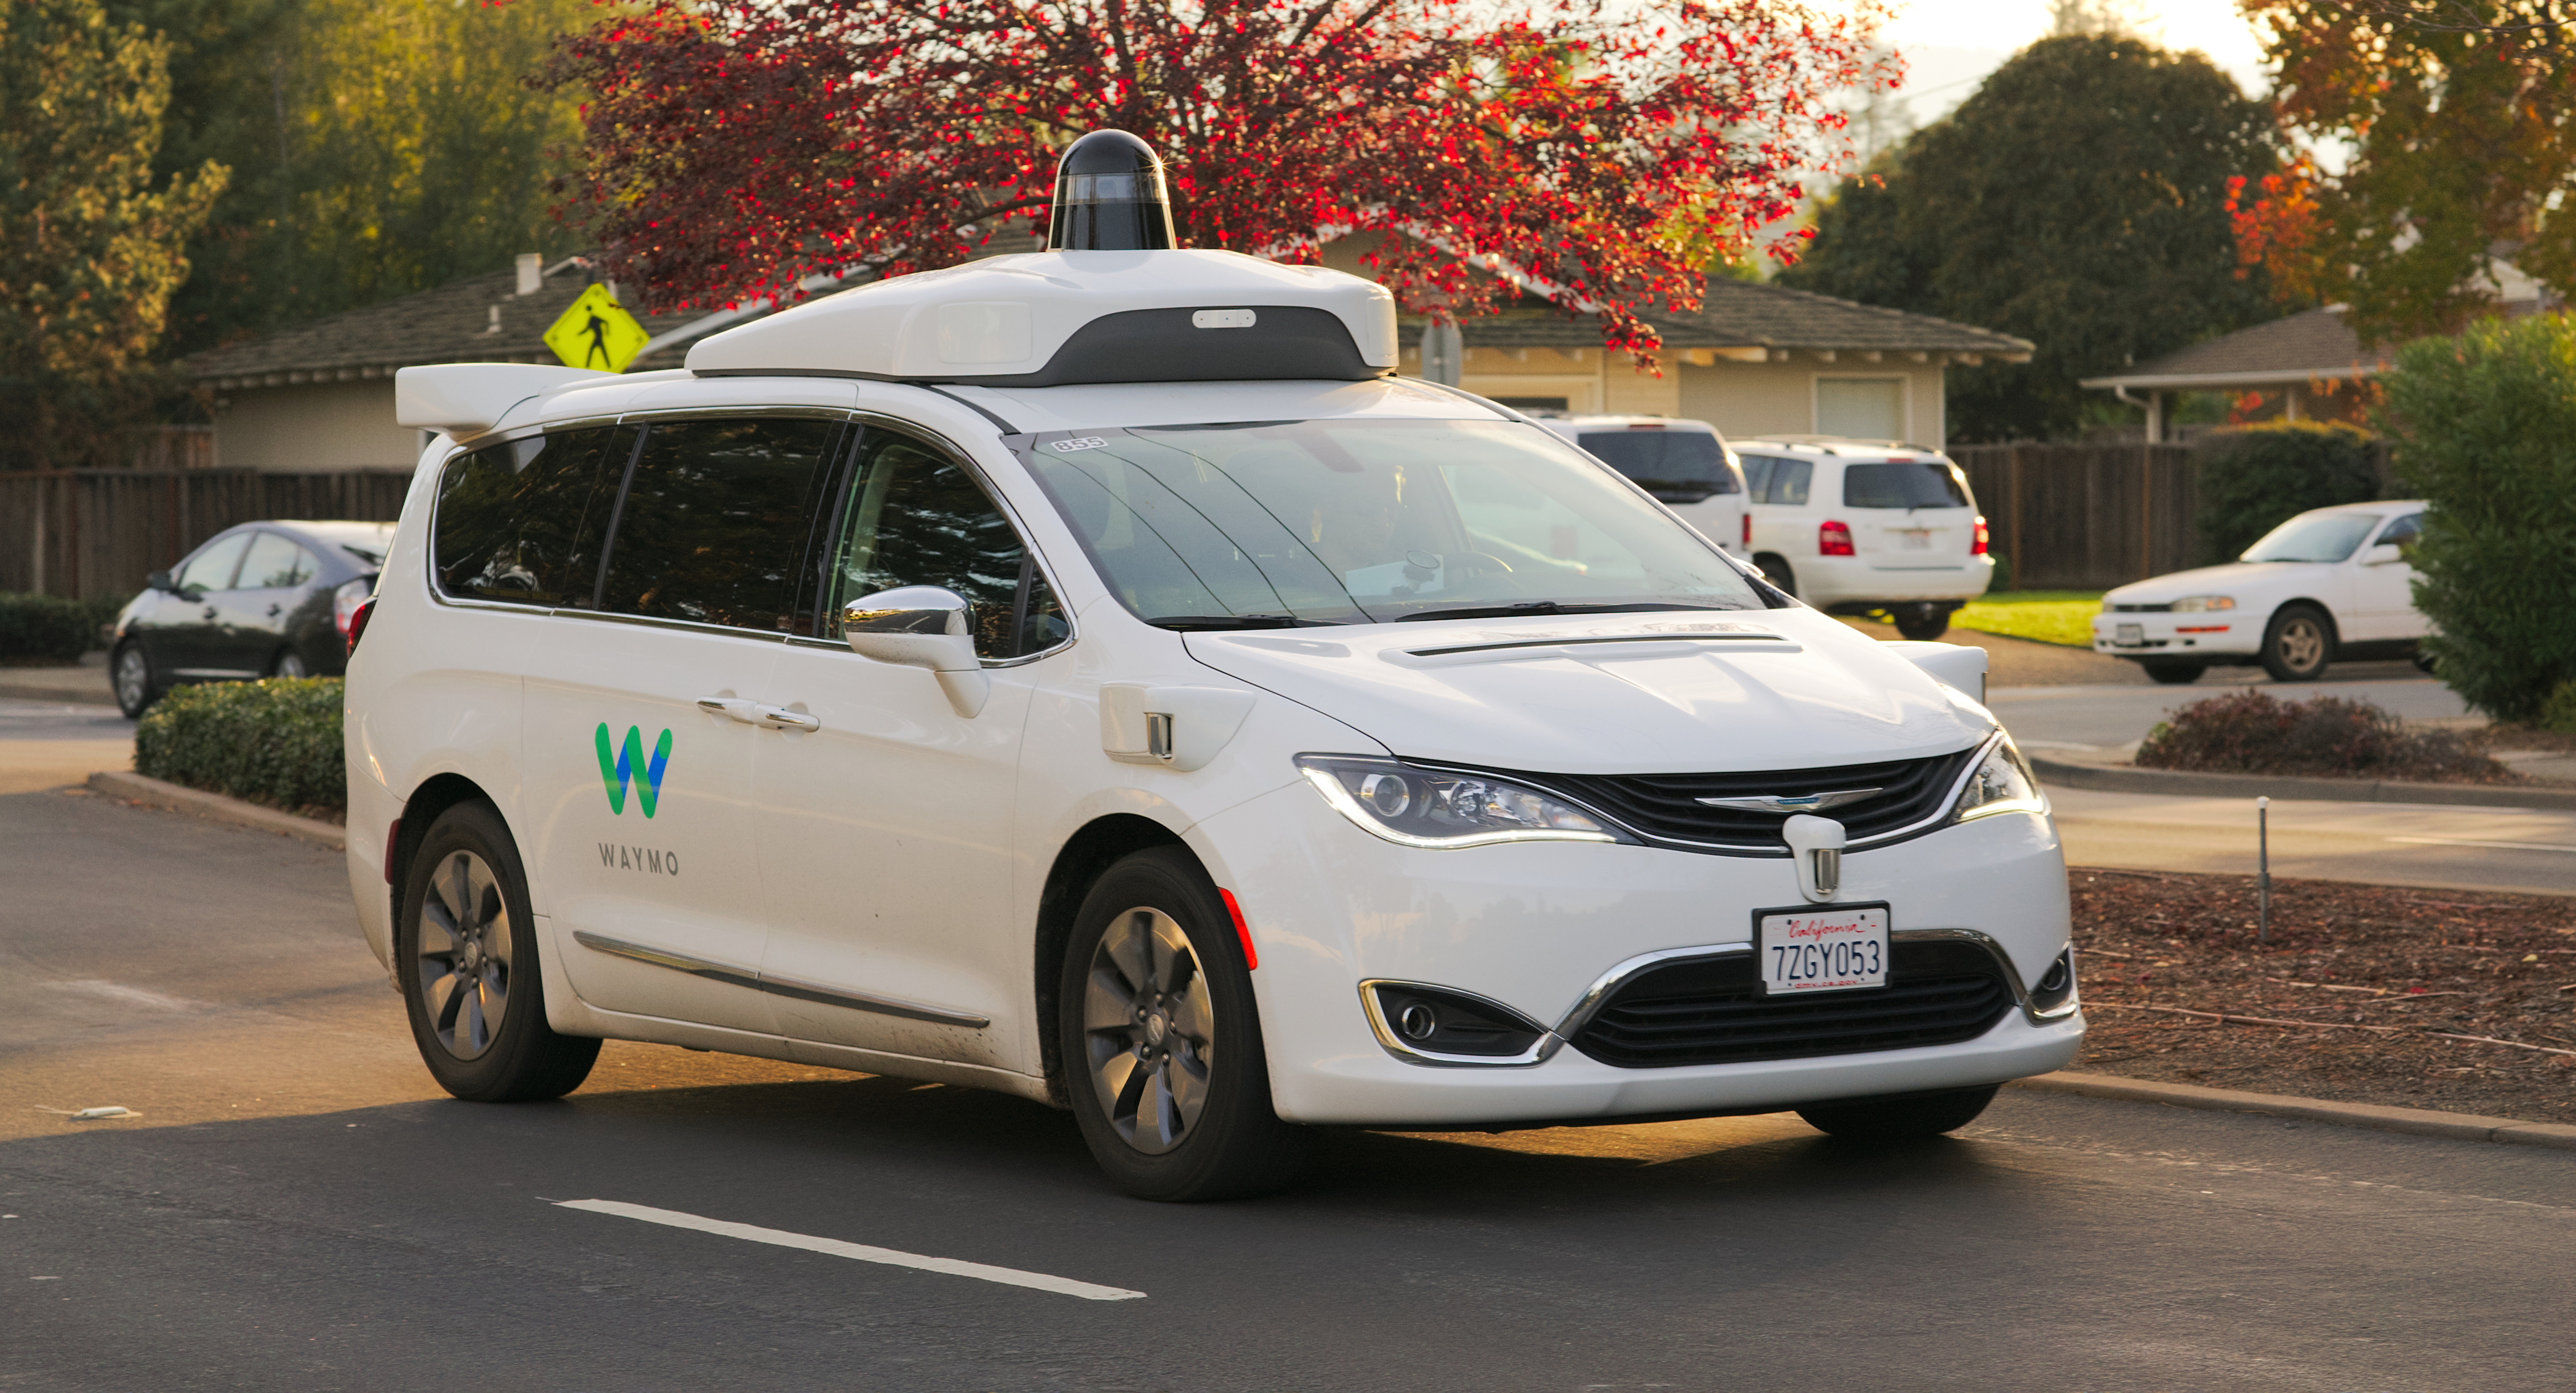 Driverless Vehicle Testing Could Begin in California by April